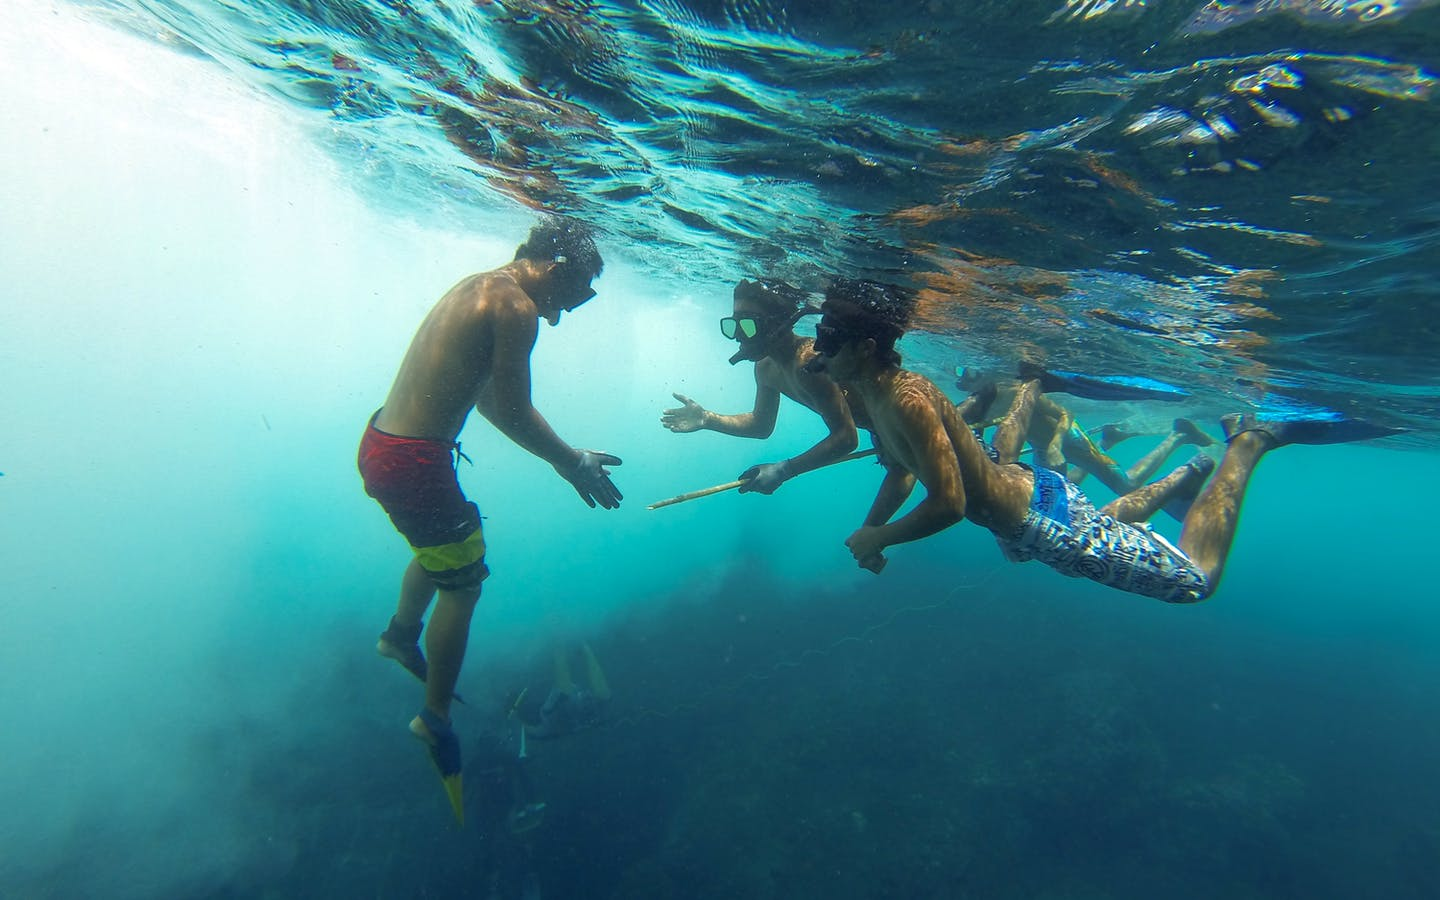 Free diver teaching youth how to sustainably harvest fish using a three-prong spear.